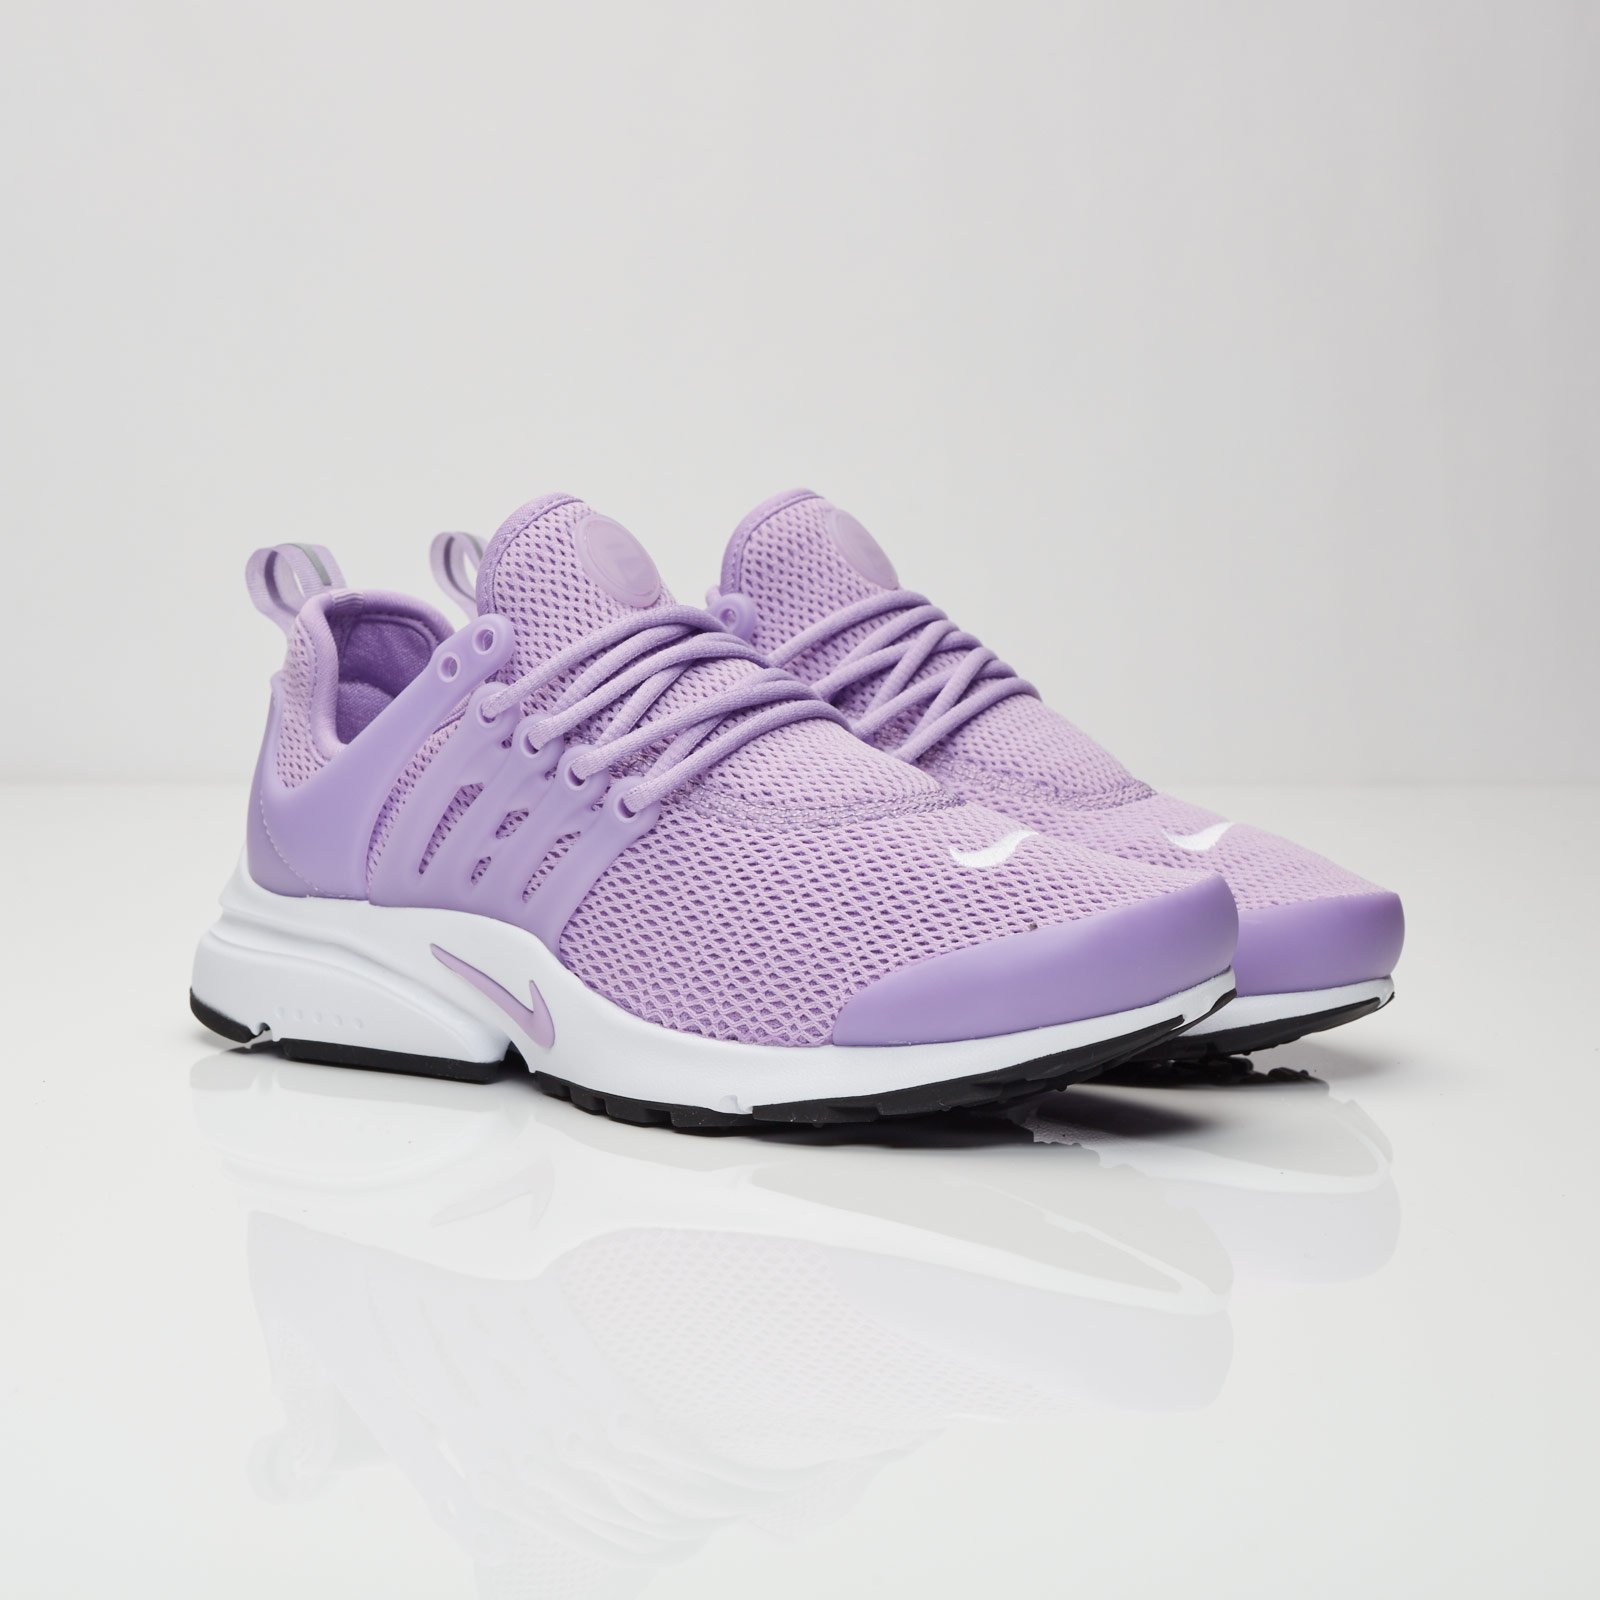 huge discount 97ff8 f2d35 Nike Wmns Air Presto - 878068-500 - Sneakersnstuff ...